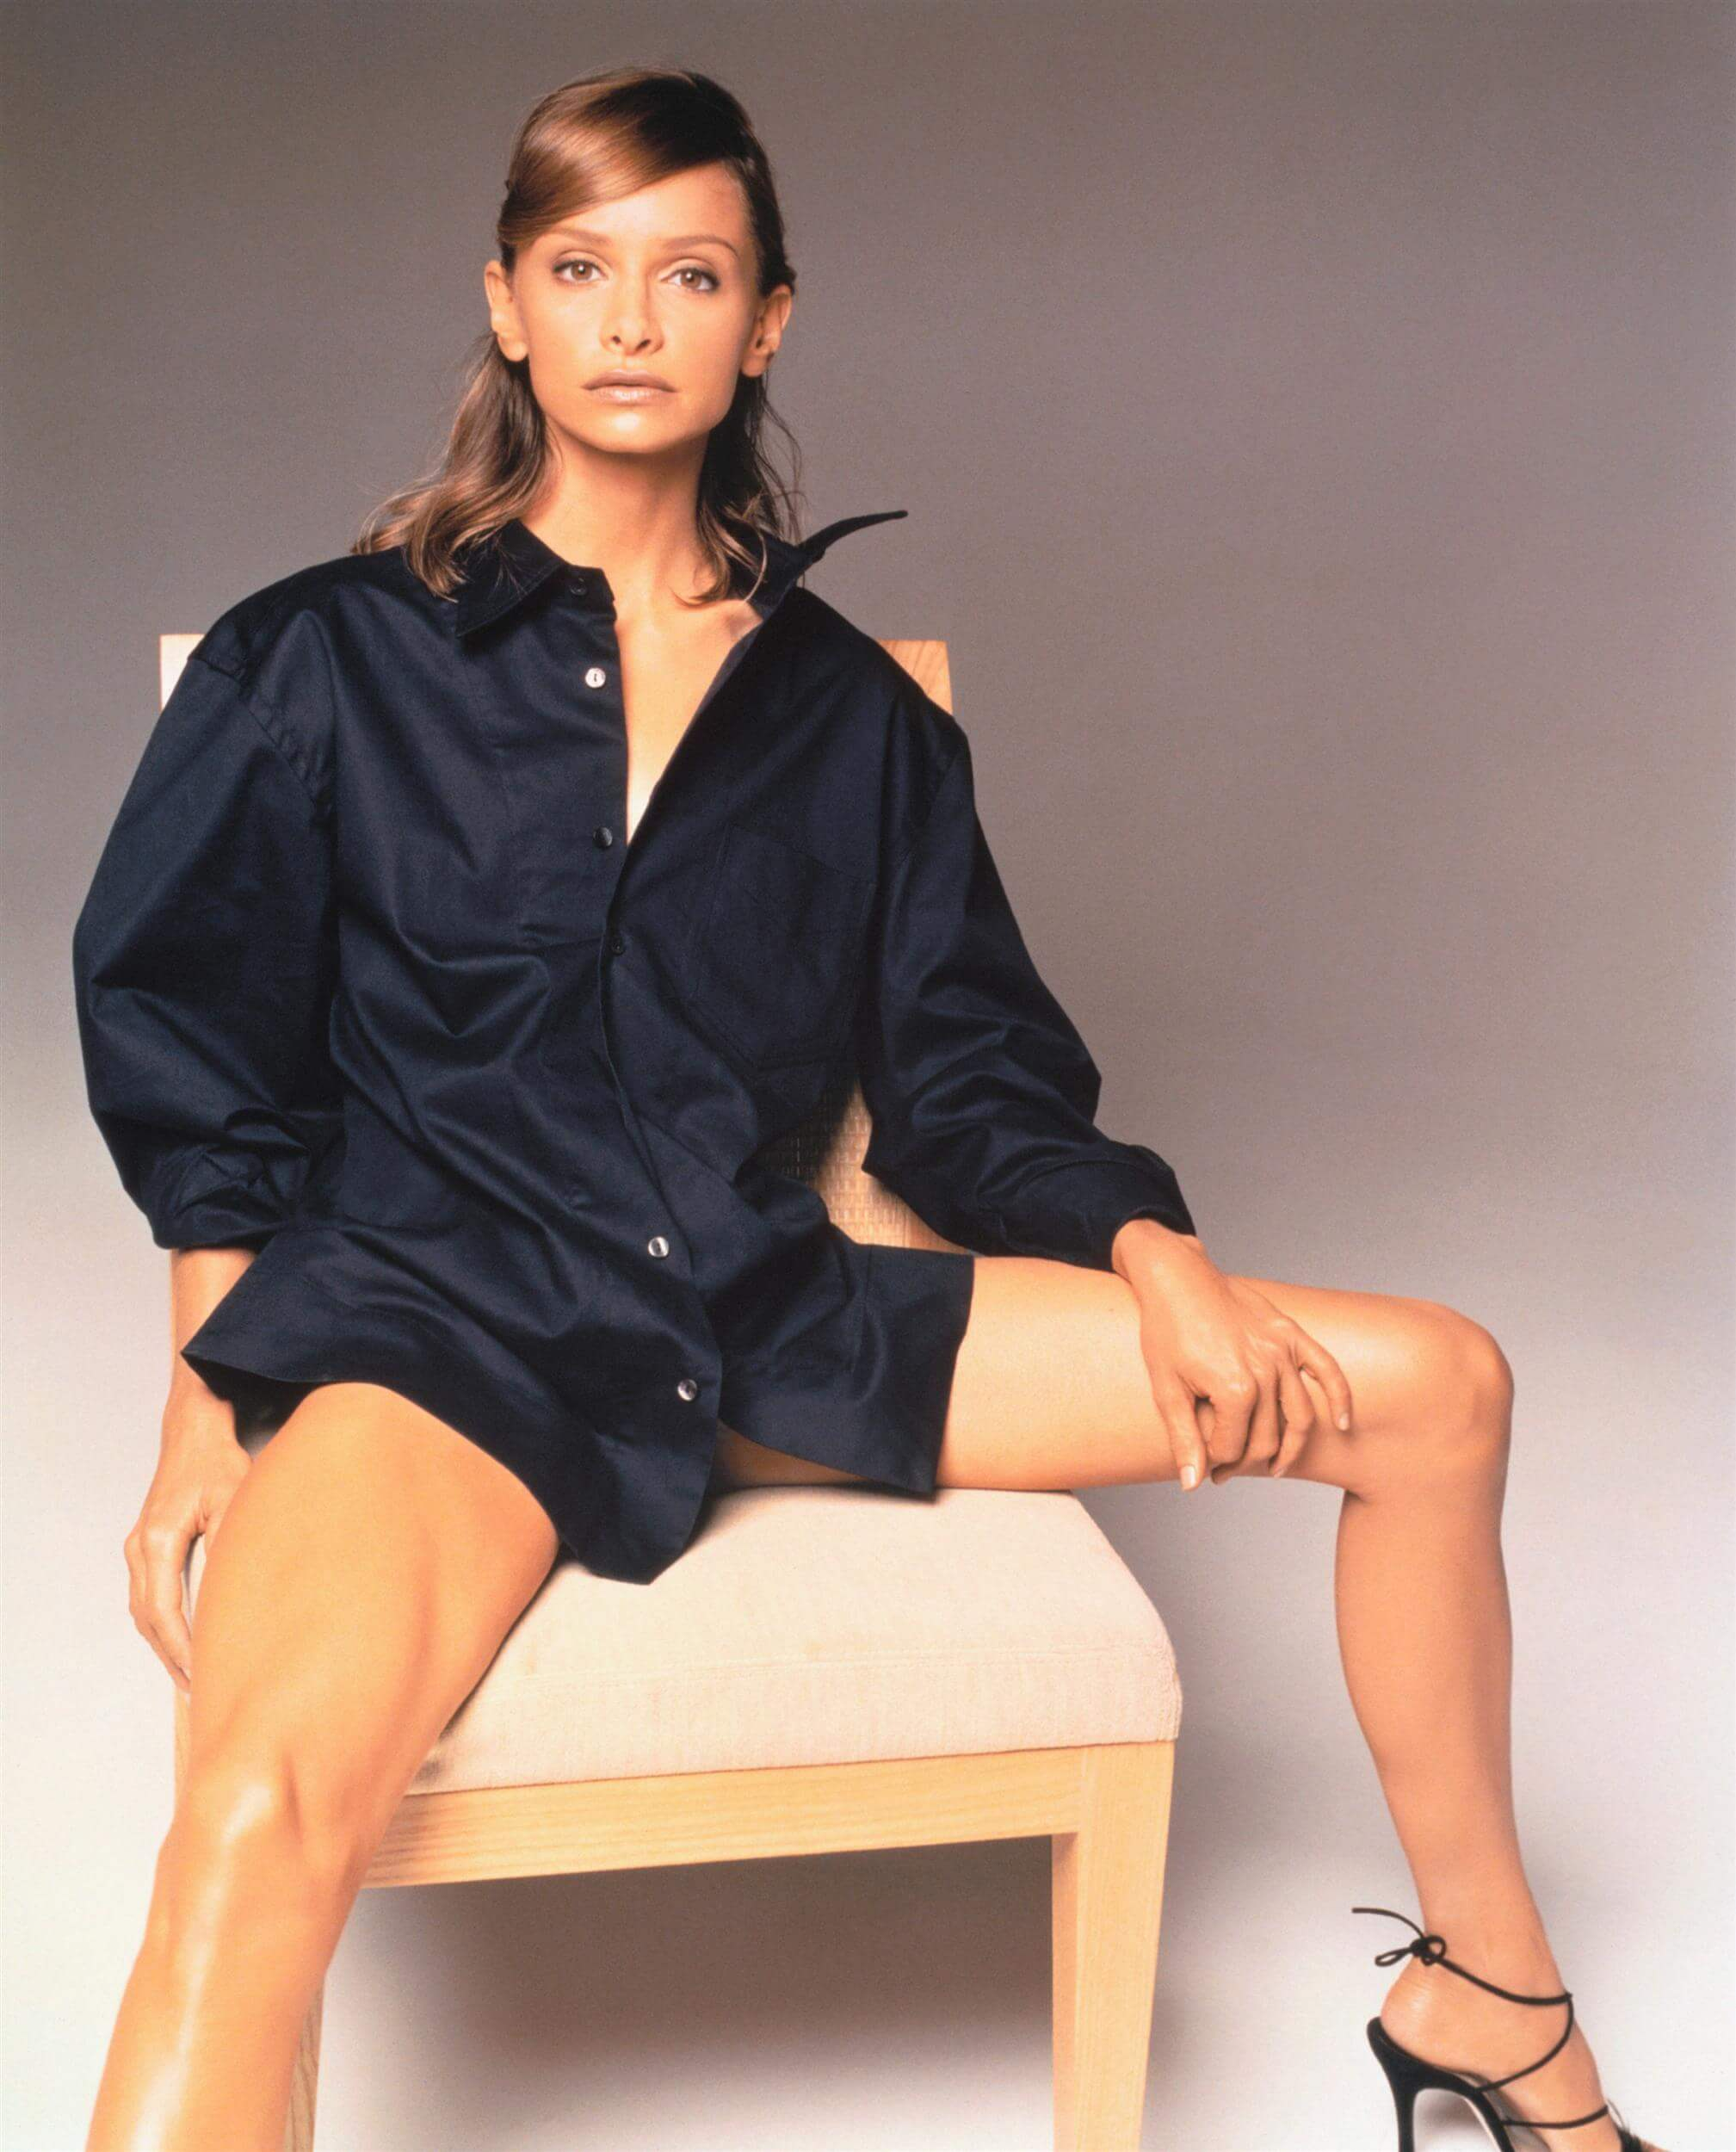 Calista Flockhart beautfiul legs